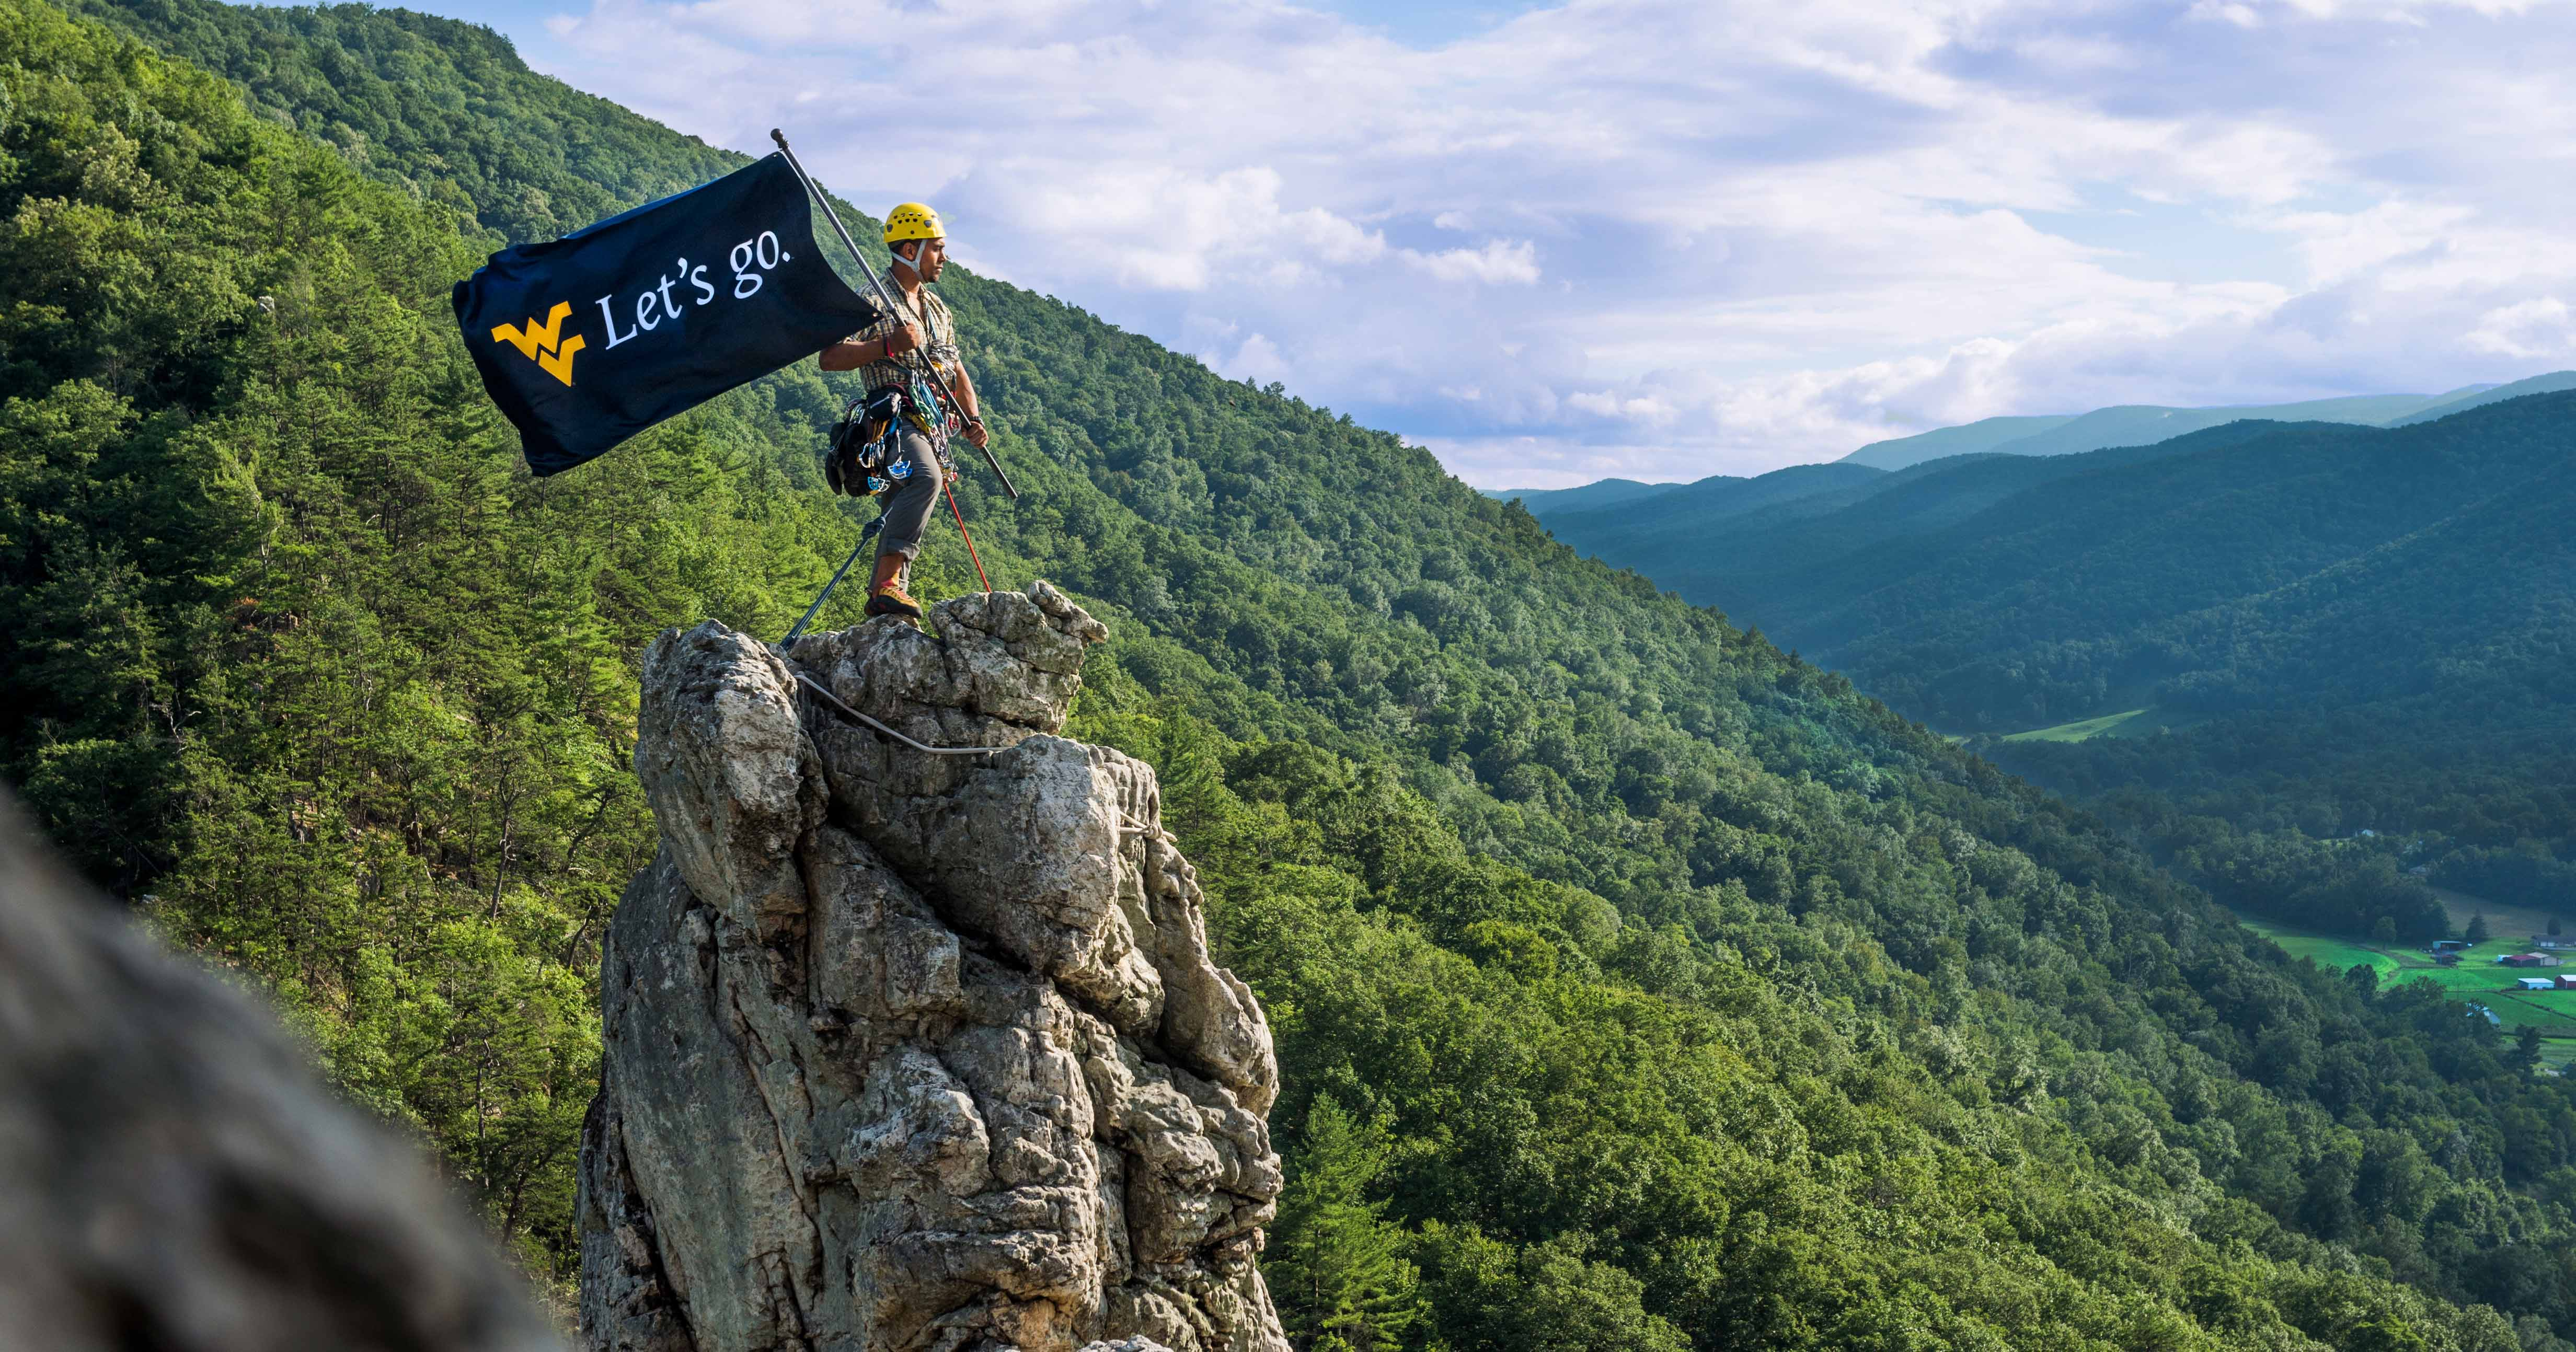 West Virginia University Address >> Your Career Path To Scouting Begins At West Virginia